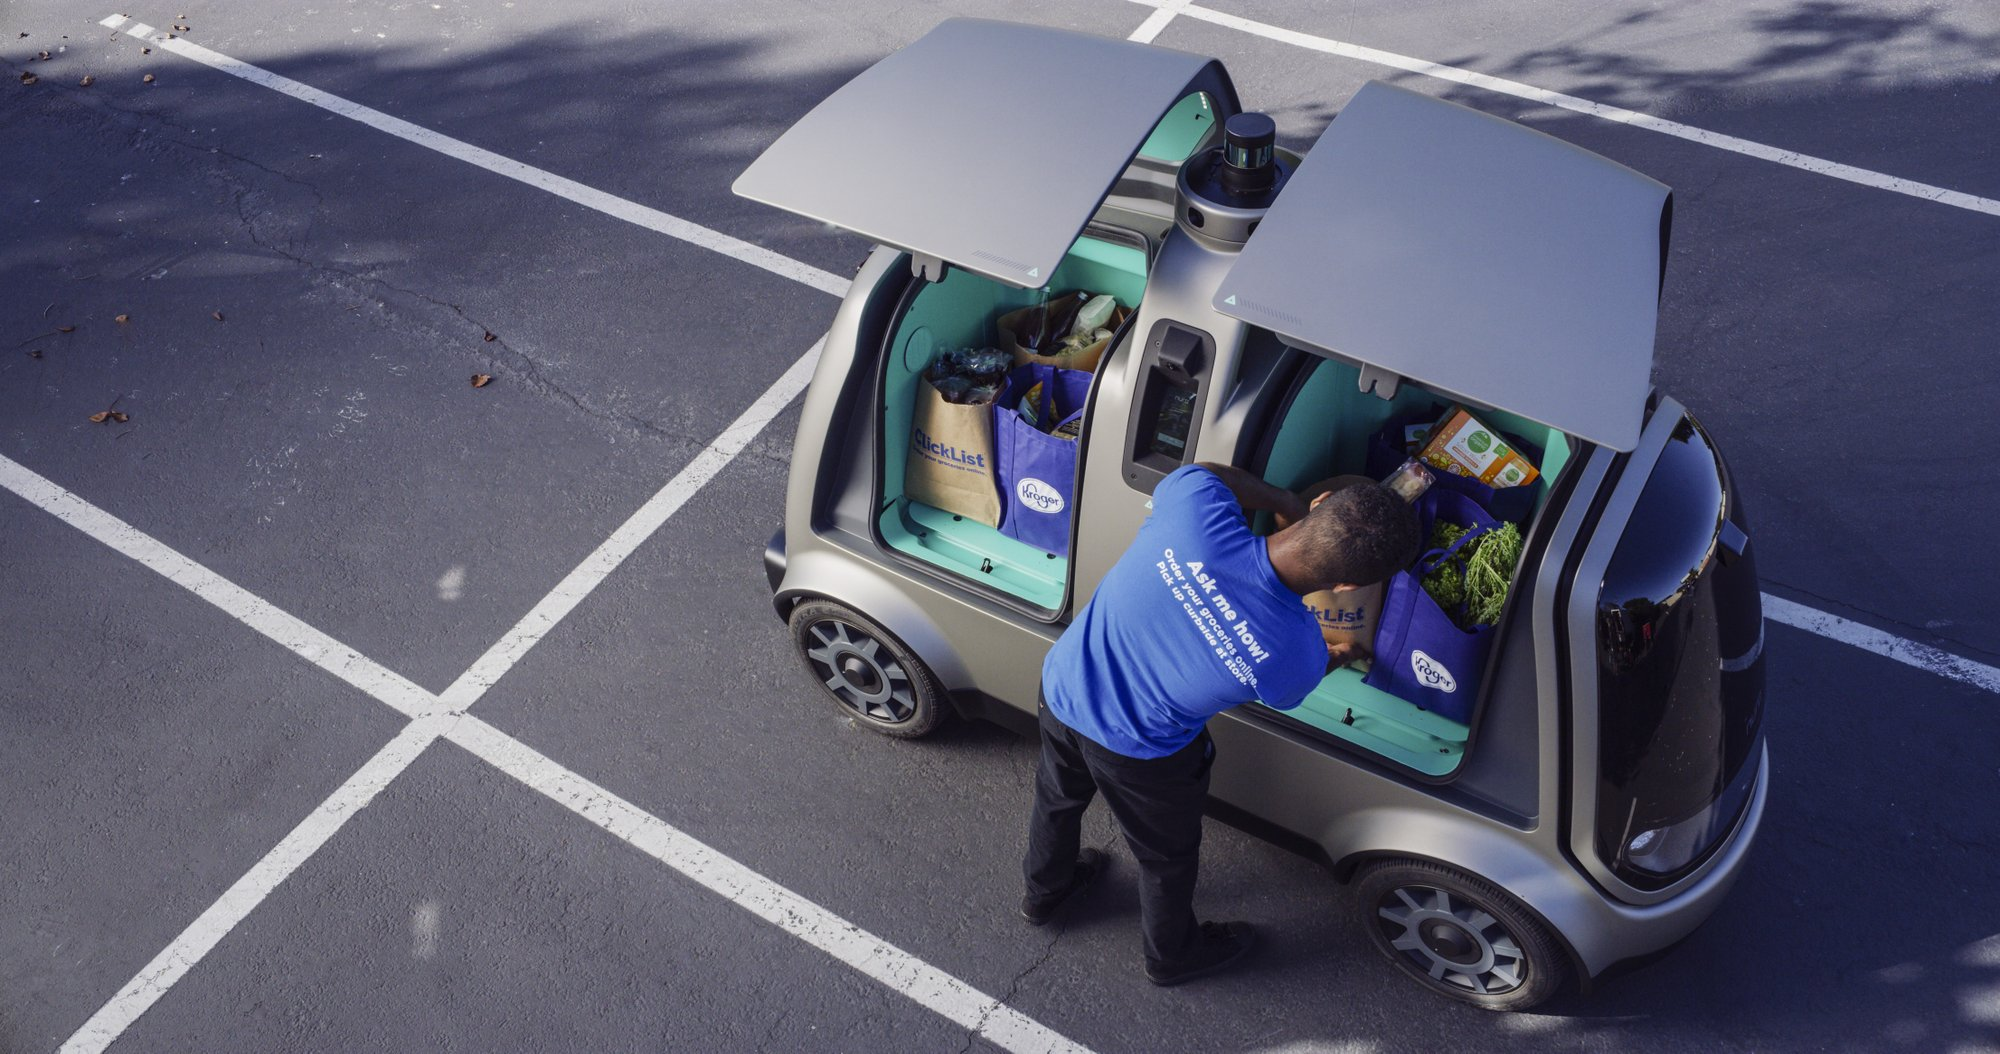 Grocery delivery, with no humans drivers, underway...